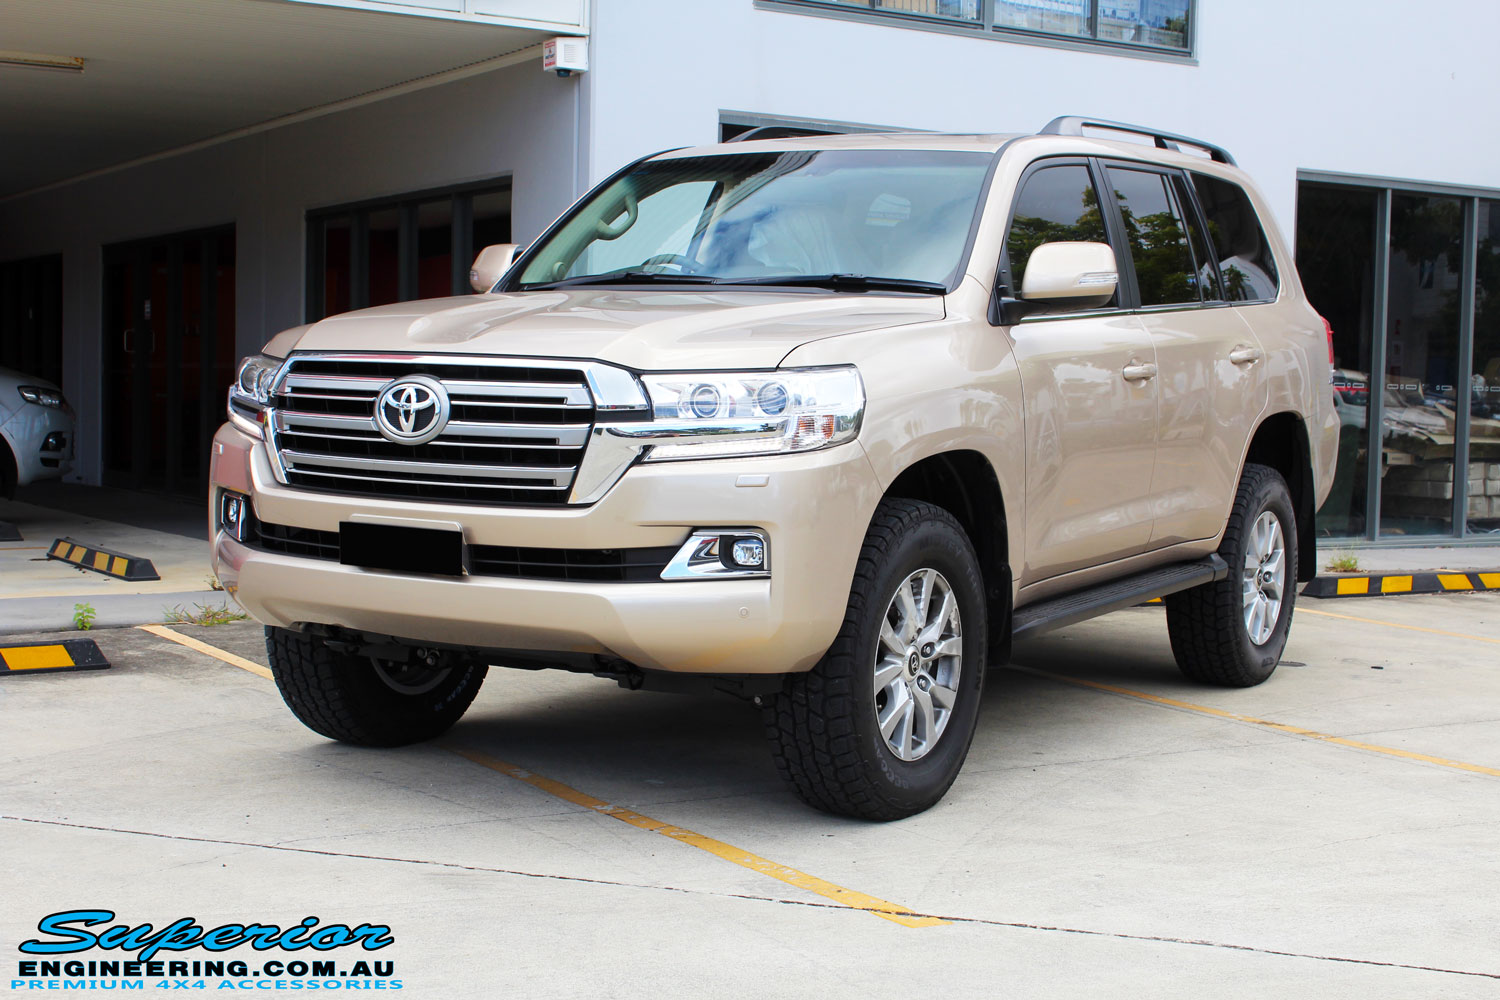 "Right front side view of a Gold Toyota 200 Series Landcruiser after fitment of a 2"" Inch Lift Kit"